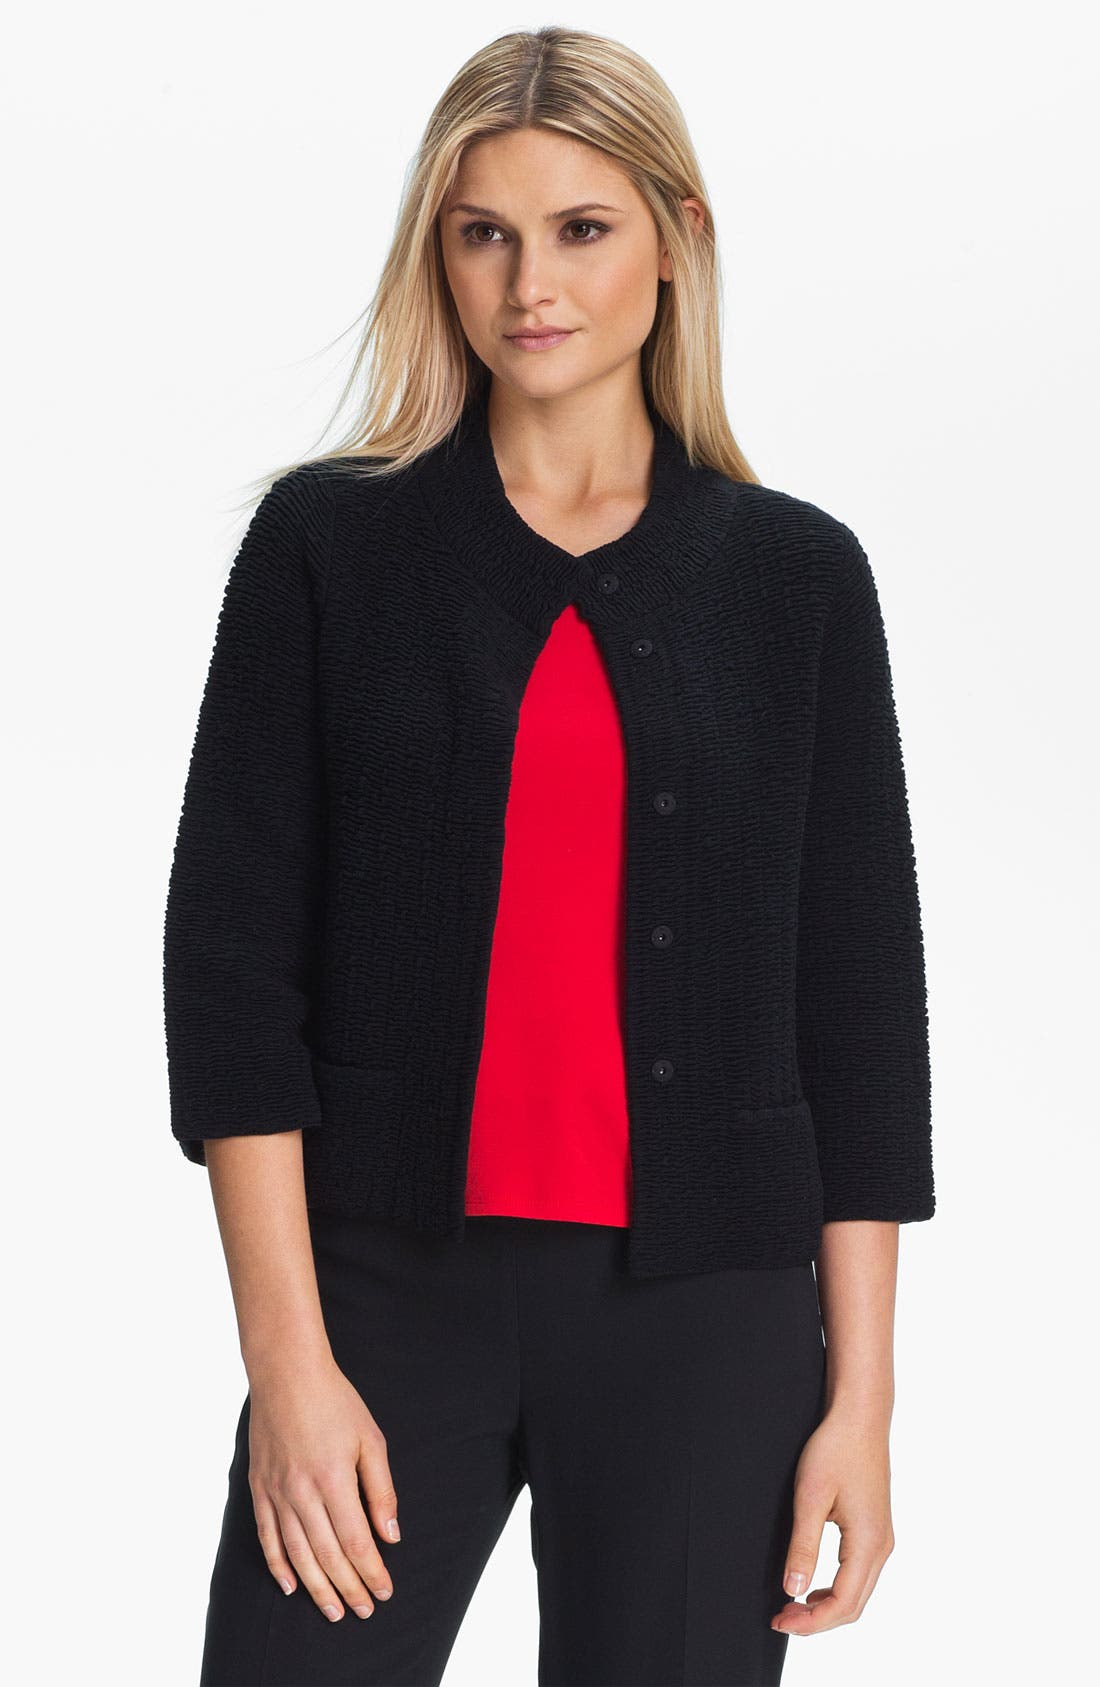 Alternate Image 1 Selected - Eileen Fisher Silk Blend Jacquard Jacket (Petite)